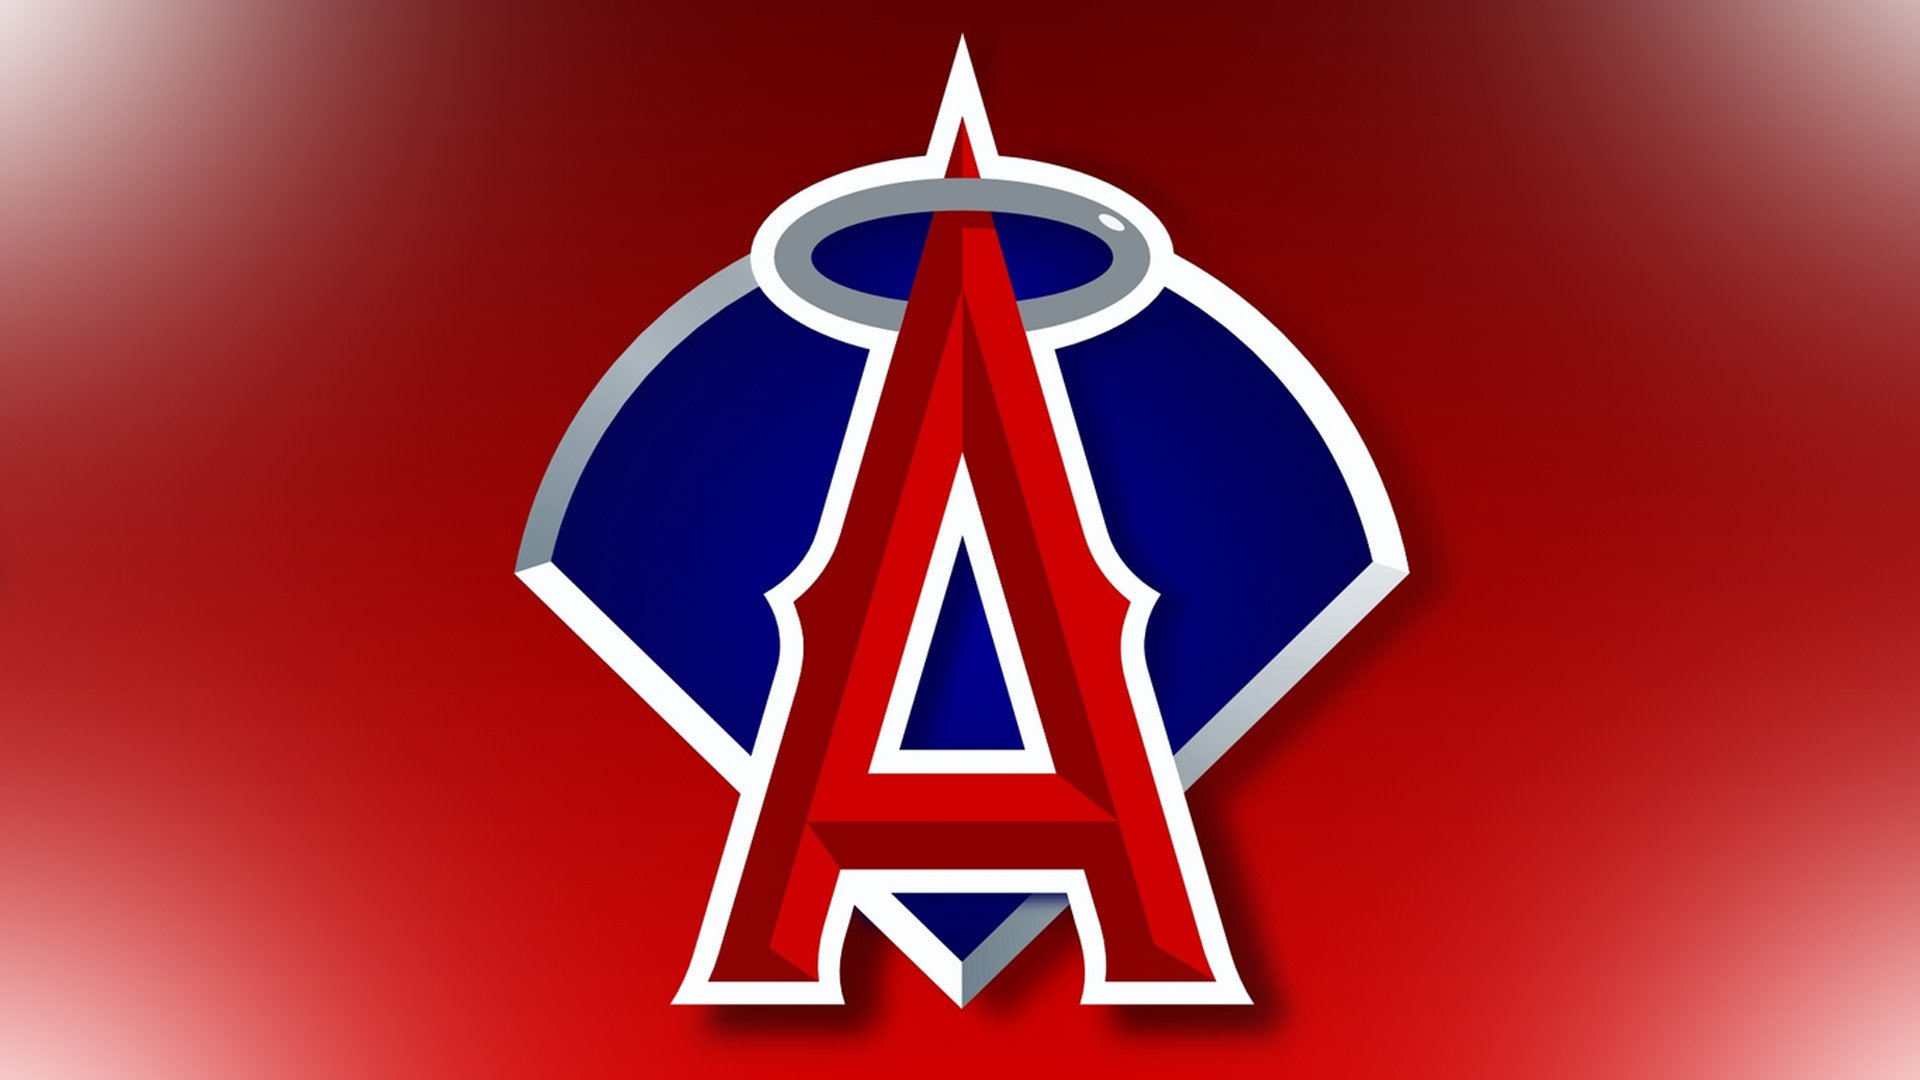 Angels baseball logo images Custom Canvas Online - Cheap Canvas Prints Online Photo